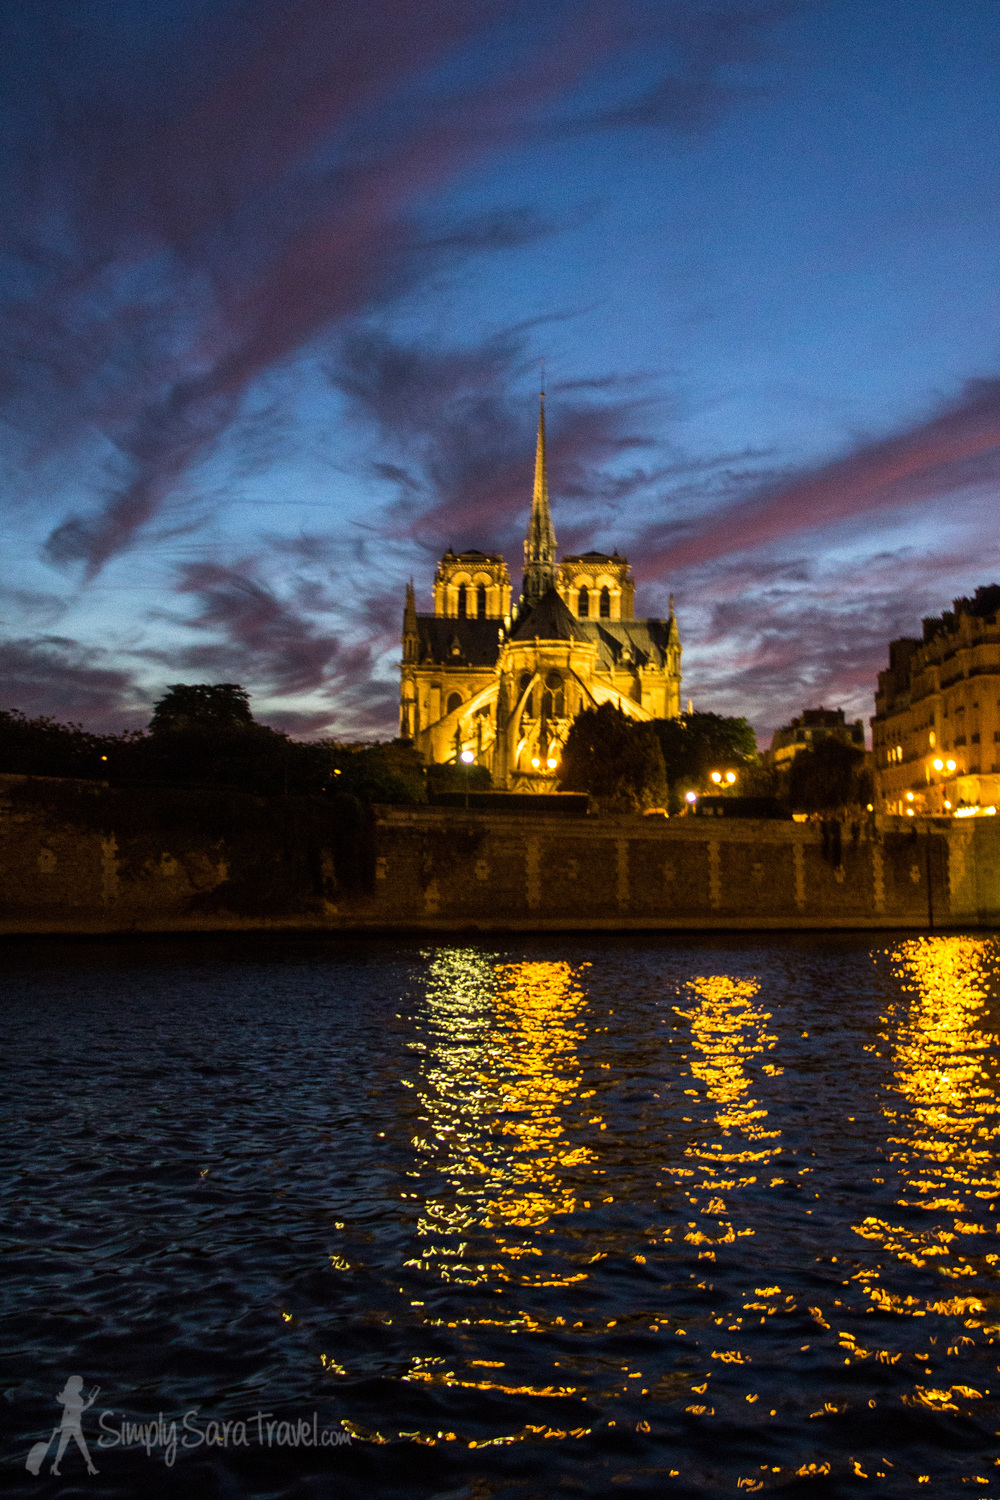 Night Falls on Notre Dame (Paris)